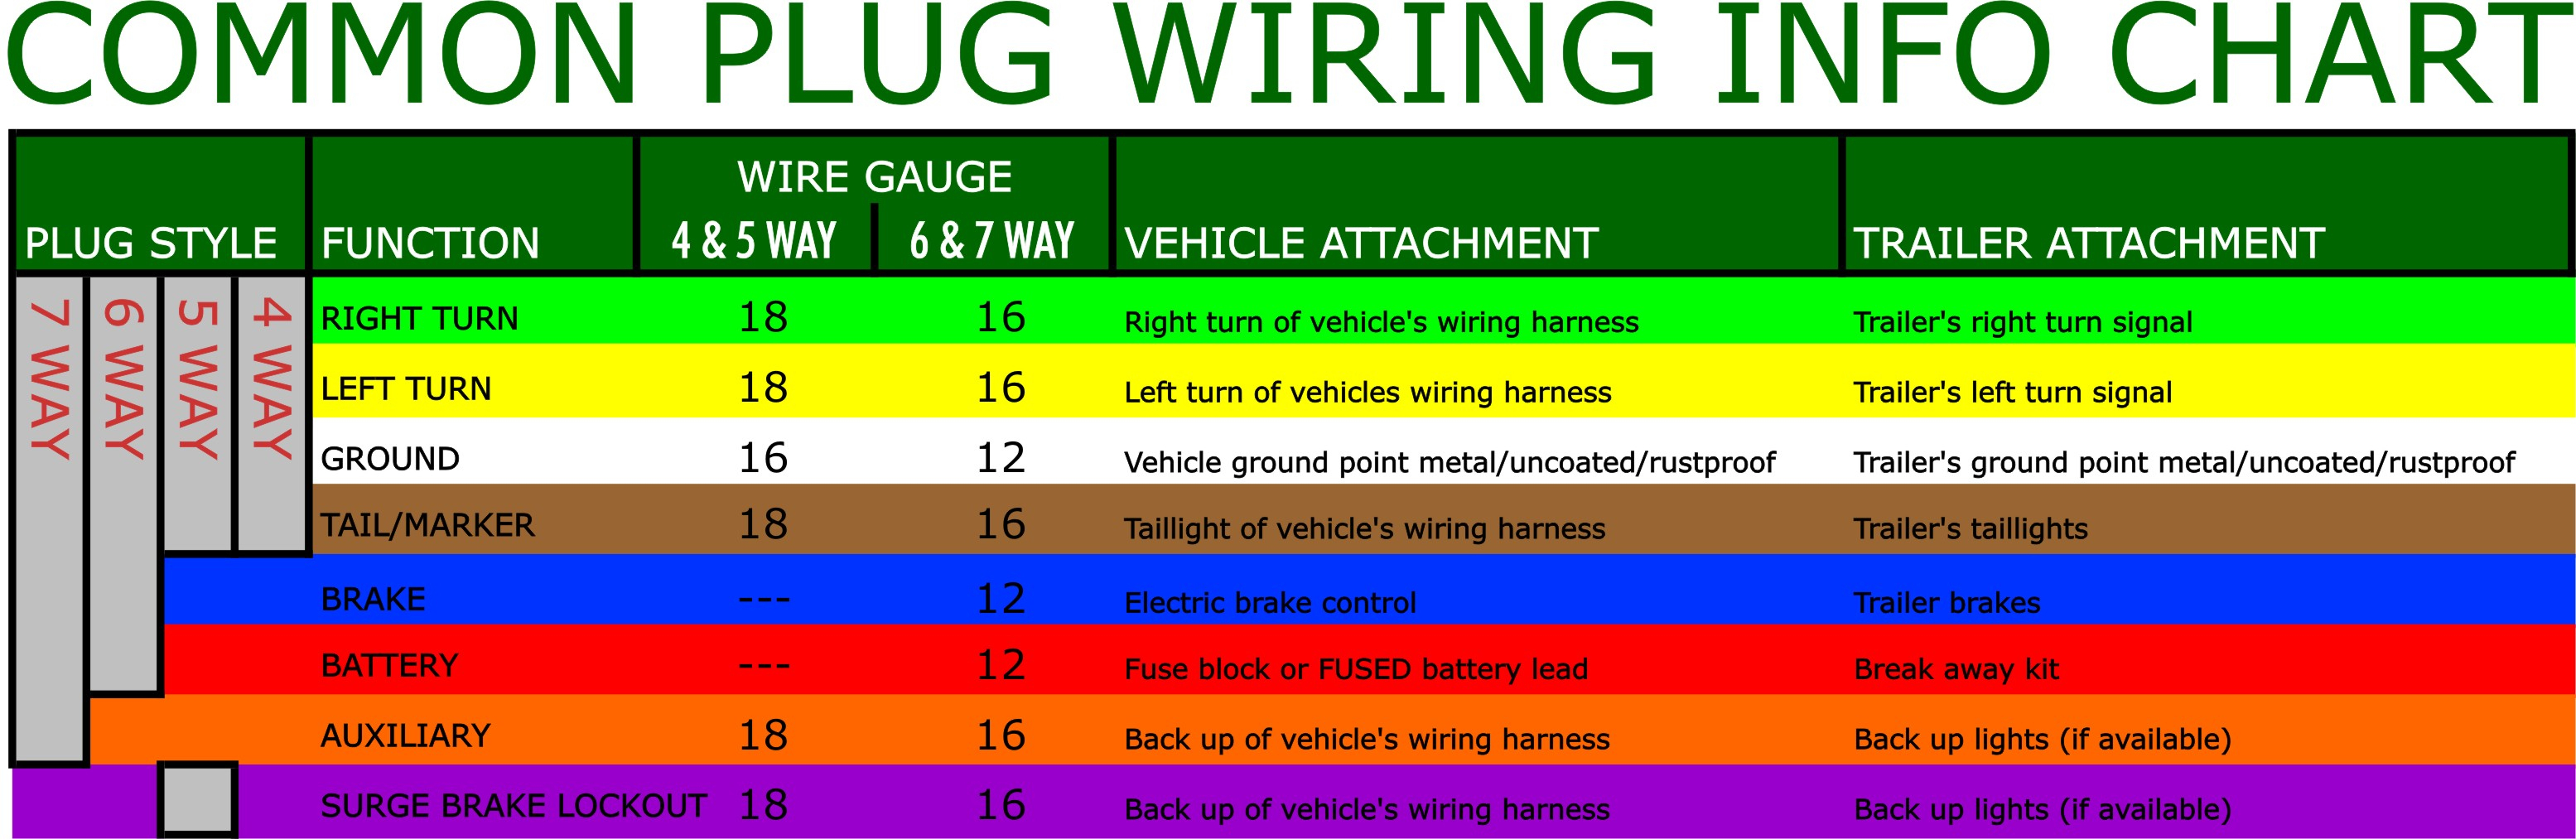 What Are The Most Common Trailer Plugs? - 7 Wire Trailer Wiring Diagram